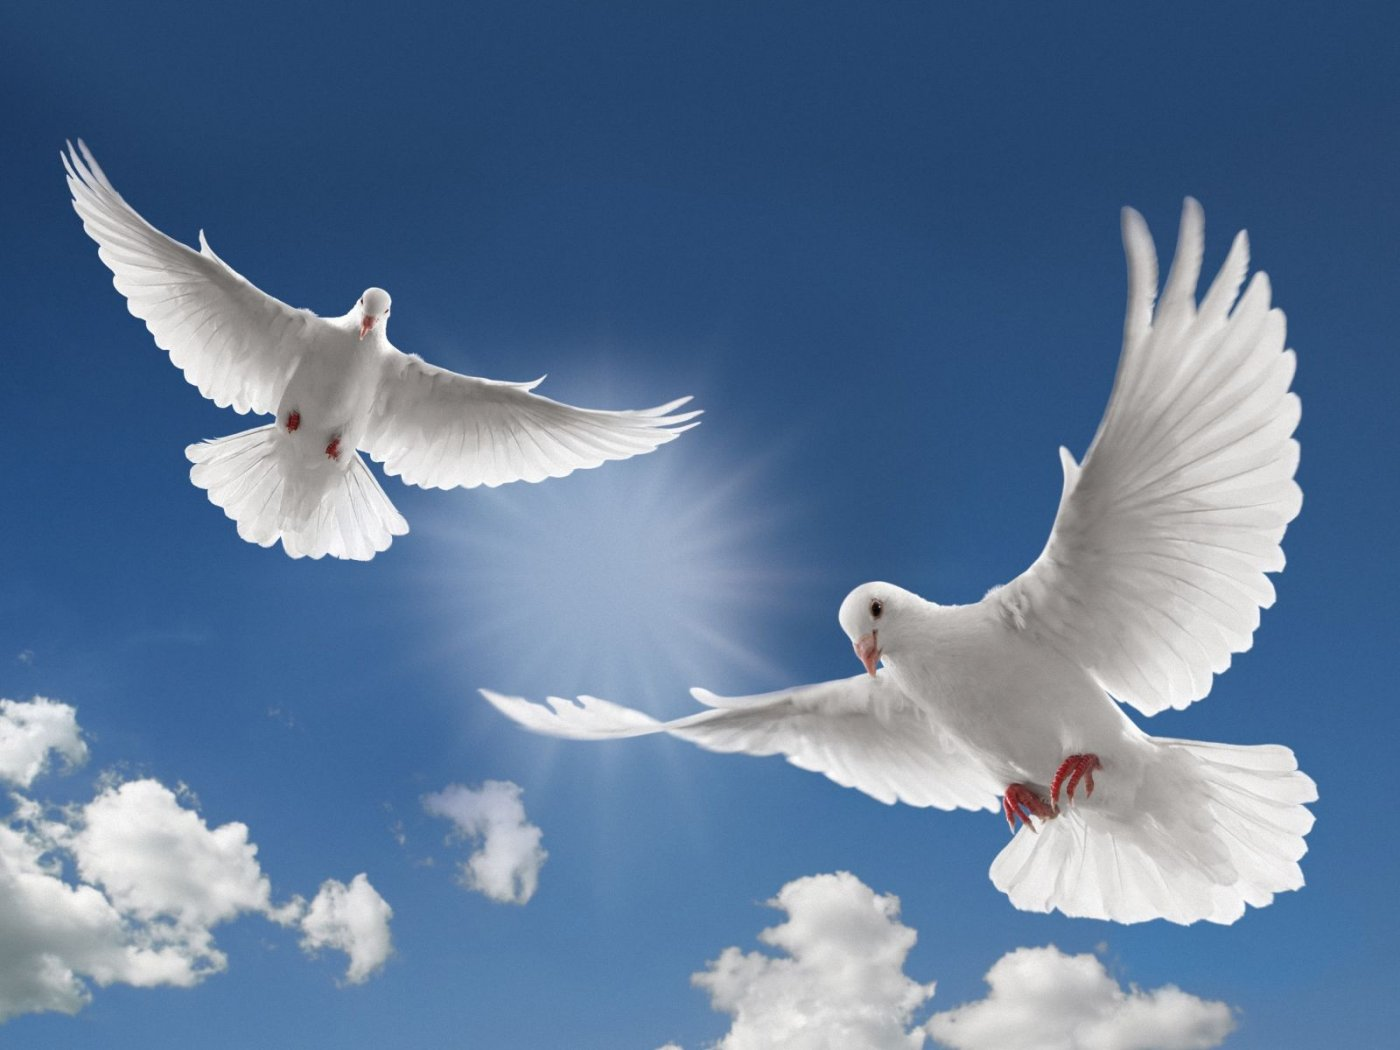 White Dove Bird Flying Photo